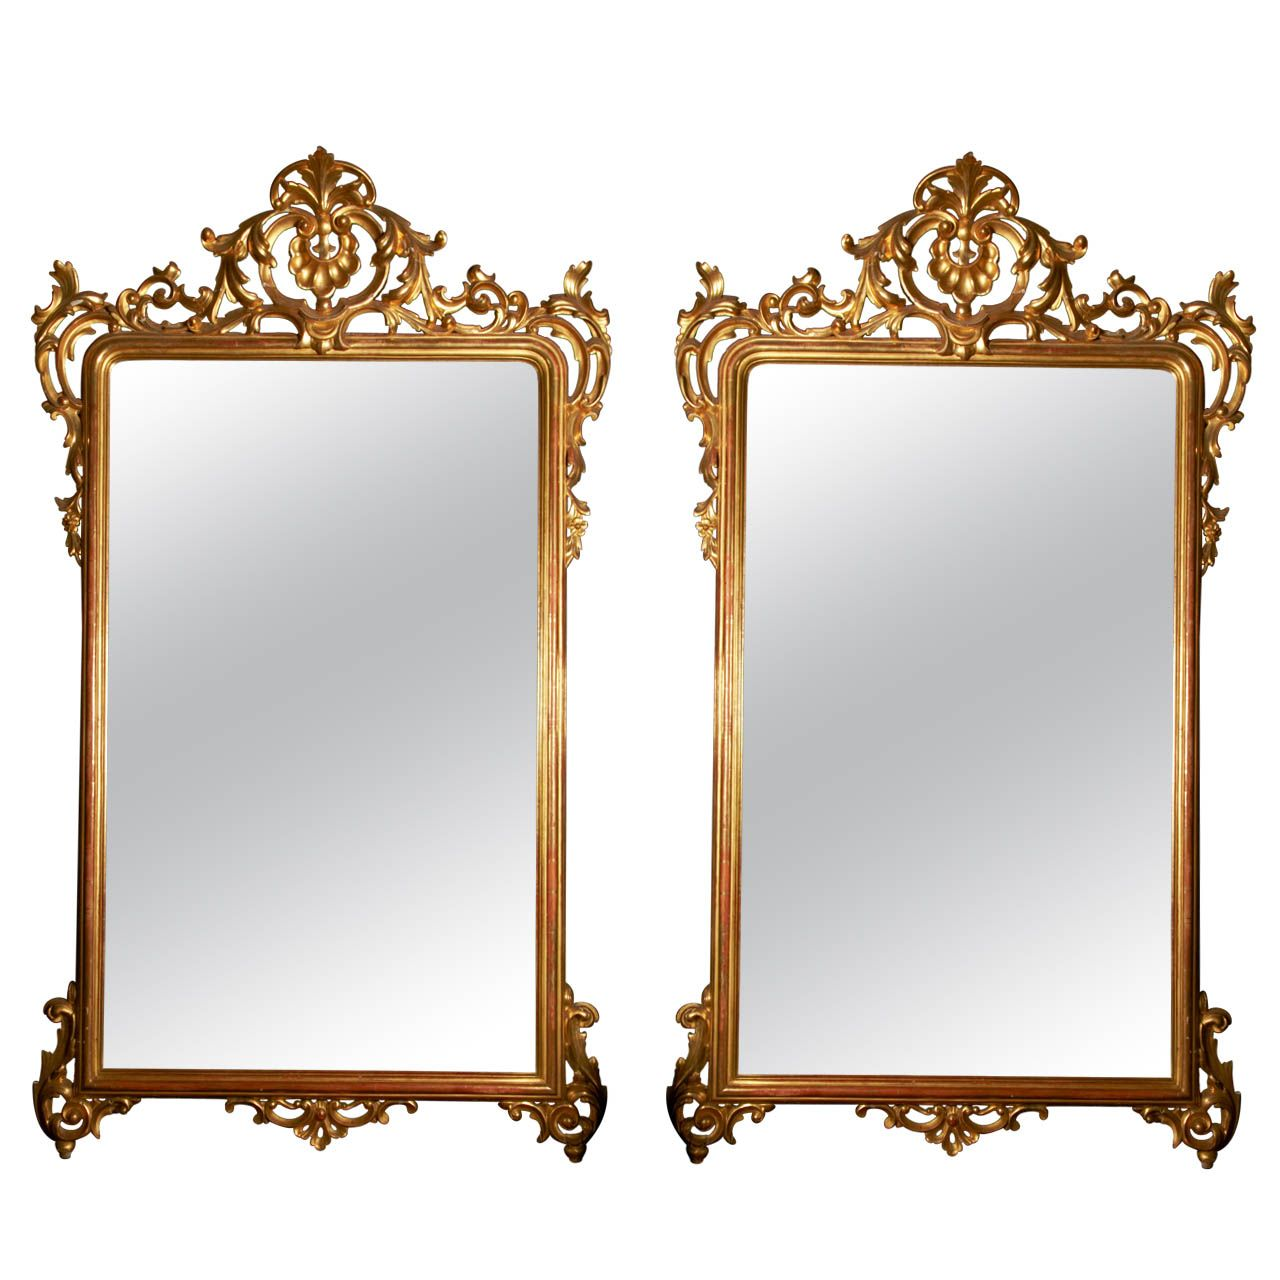 pair of 19th Century gilt wood mirrors | From a unique collection of antique and modern floor mirrors and full-length mirrors at http://www.1stdibs.com/furniture/mirrors/floor-mirrors-full-length-mirrors/